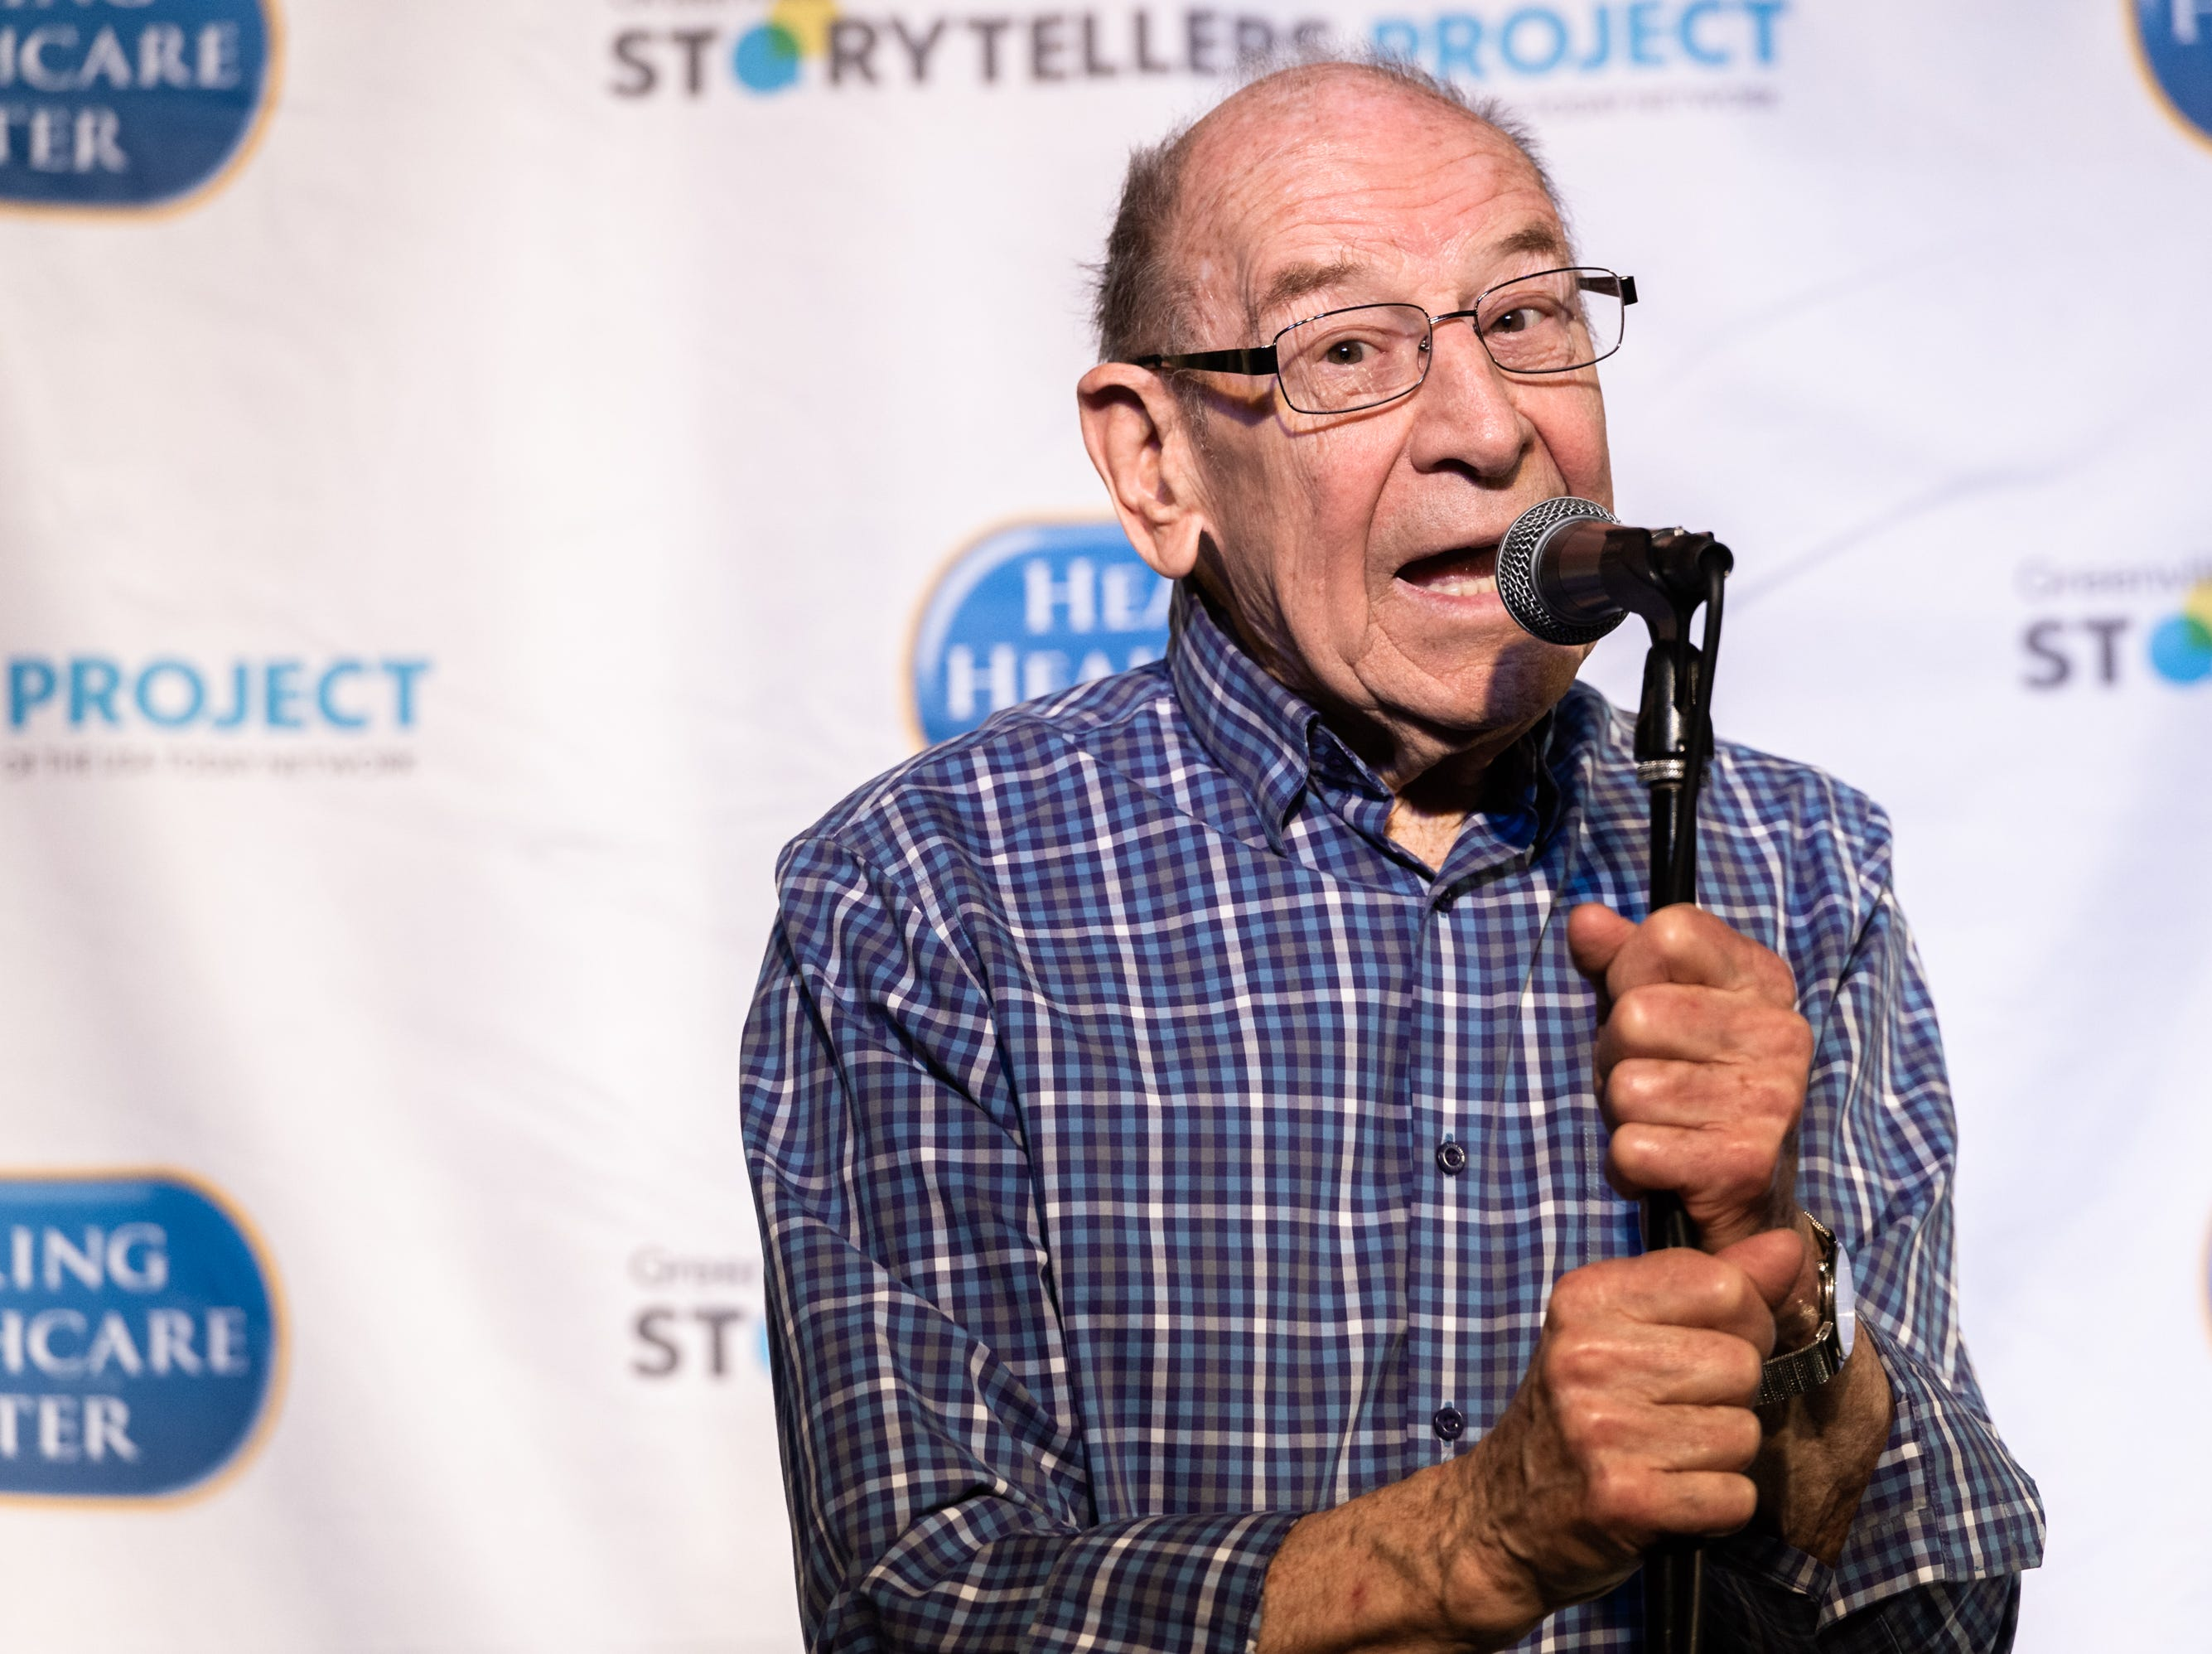 Dale Bruhn at the Greenville Storytellers Project event at the Comedy Zone Tuesday, May 14, 2019.